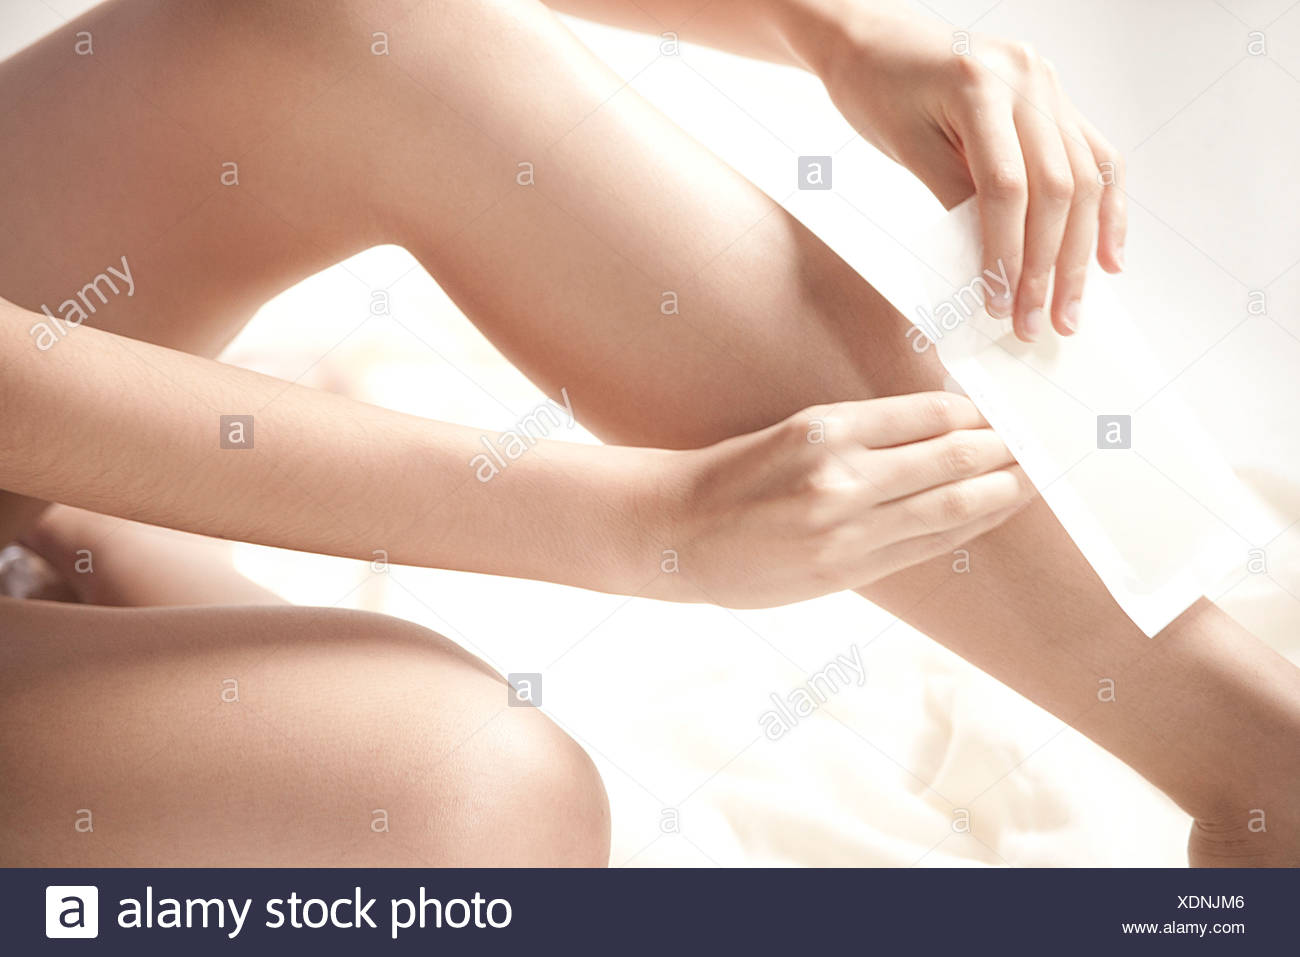 Woman waxing legs, cropped - Stock Image